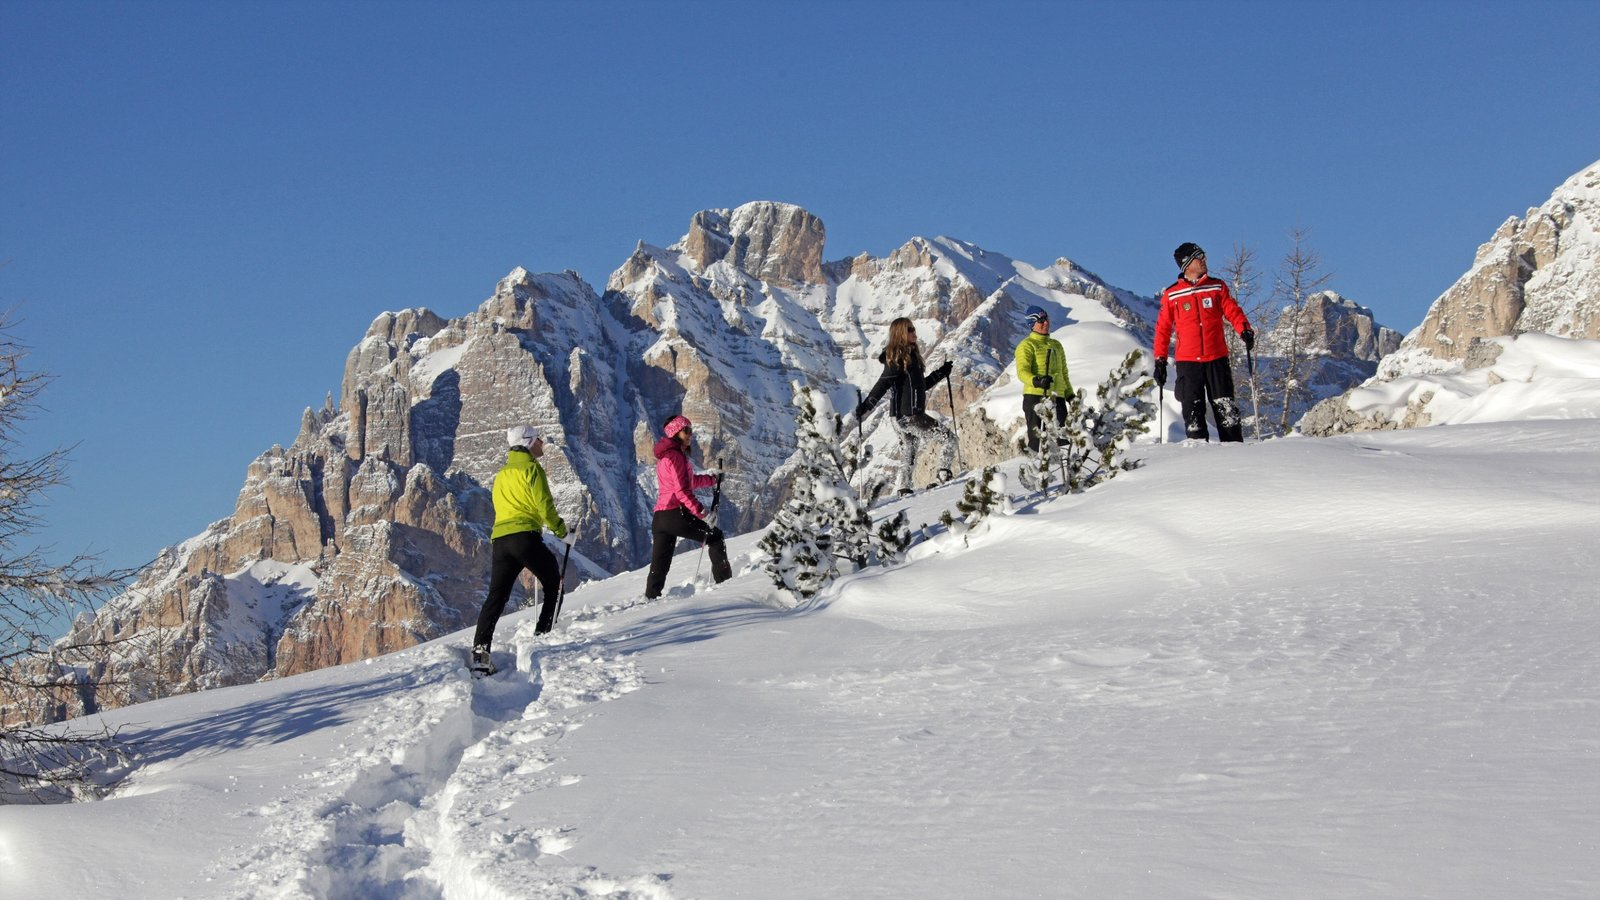 Alta Badia featuring snow shoeing and snow as well as a small group of people